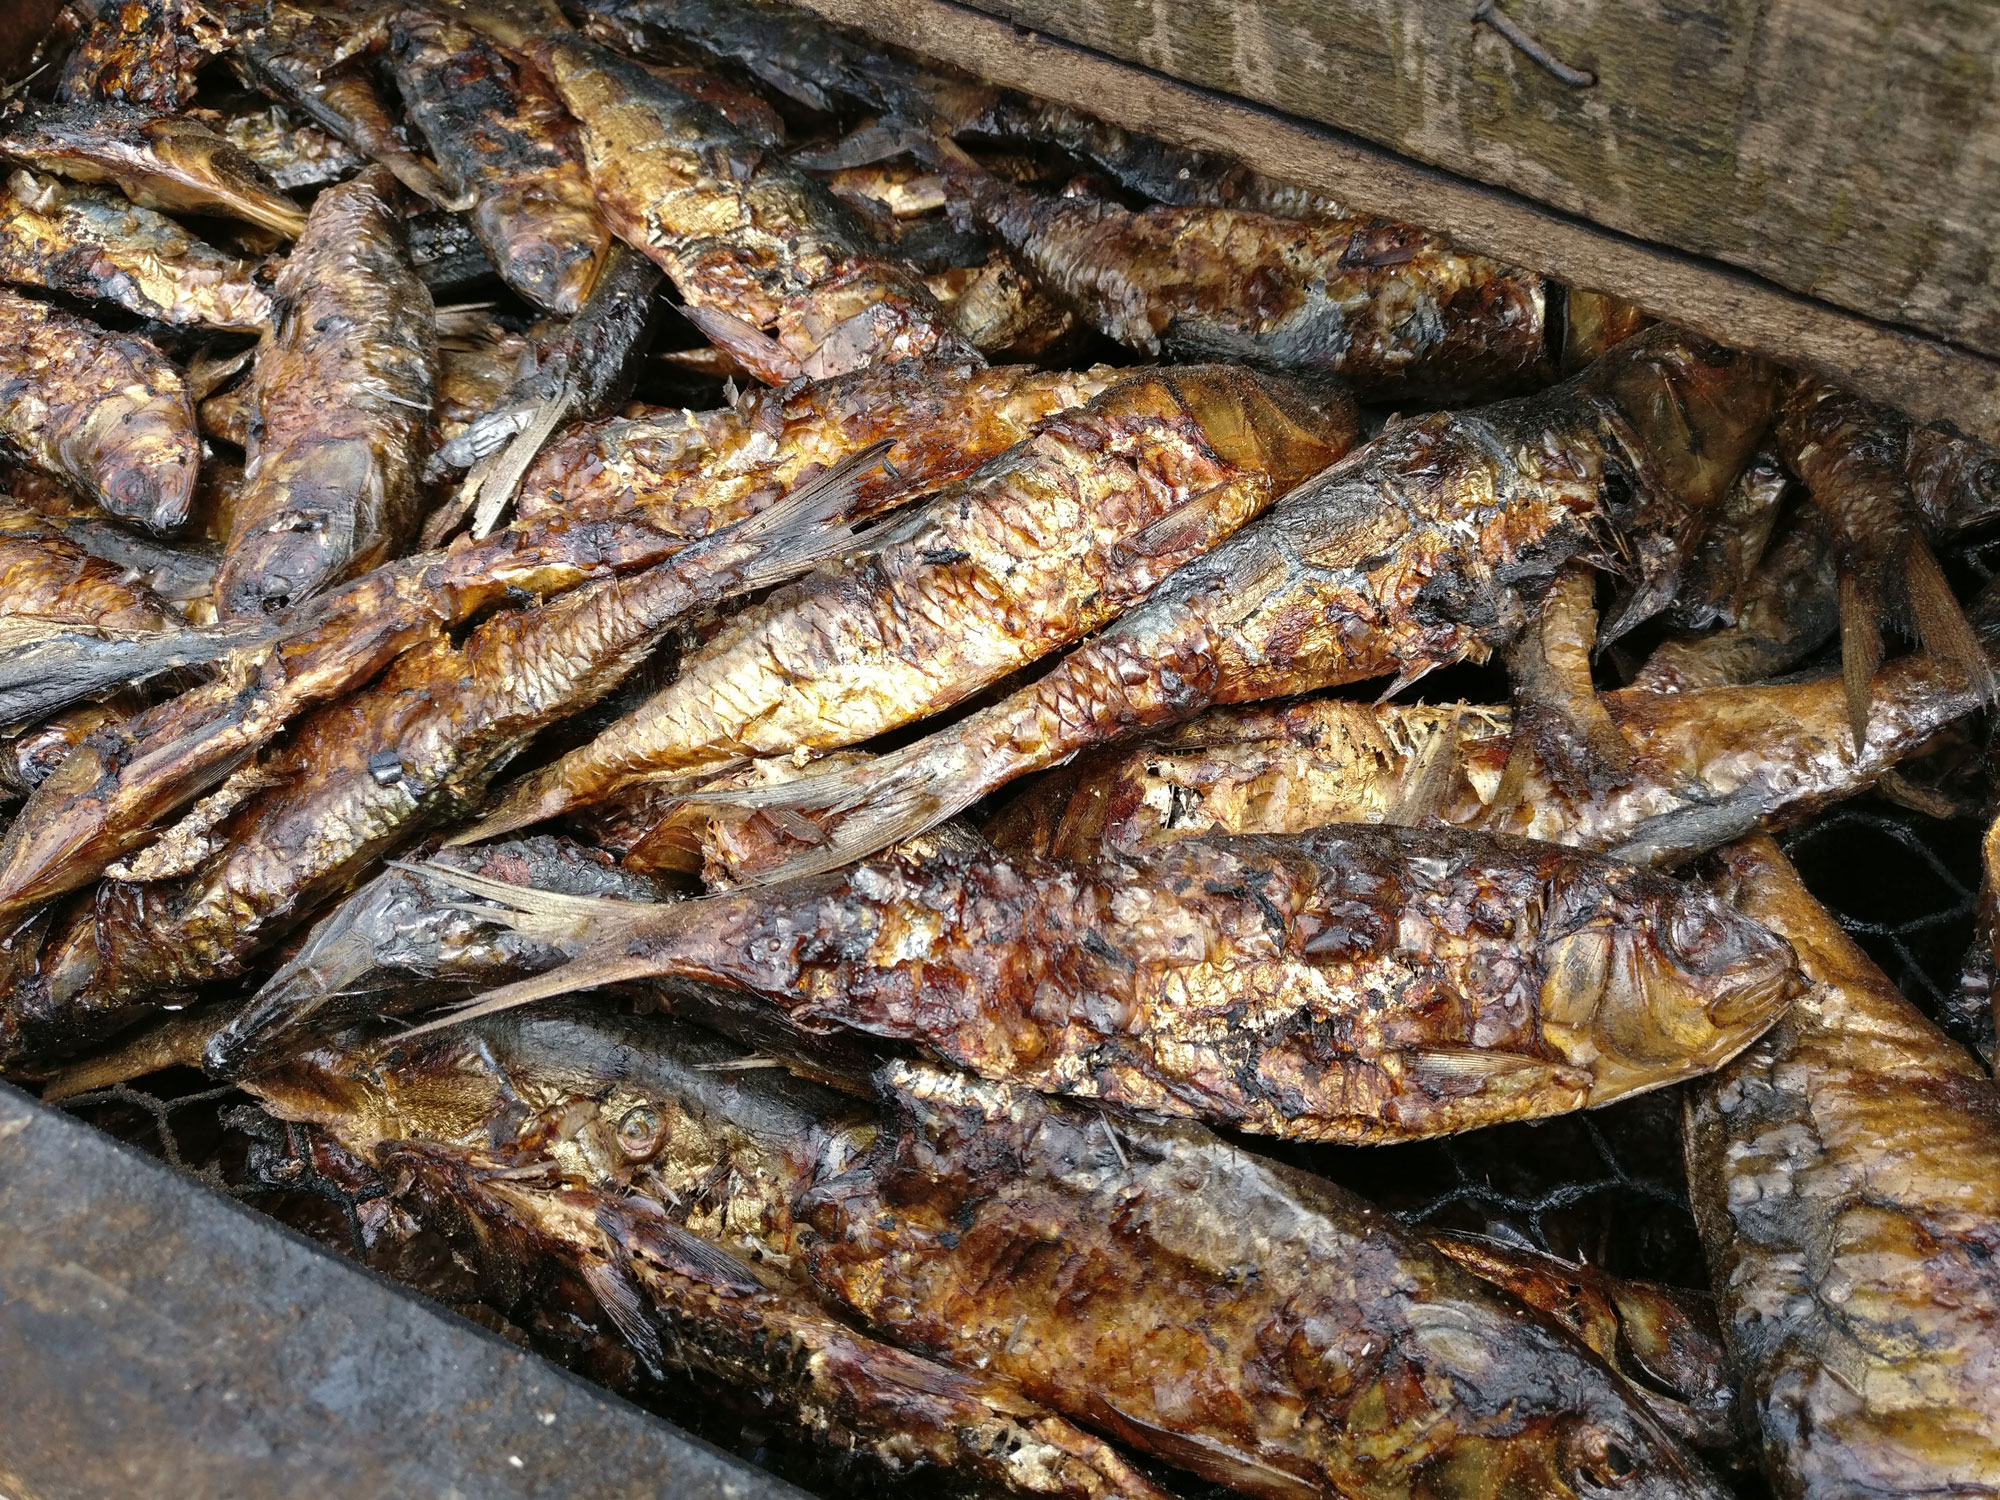 Smoked Fish in Ghana. Image credit: Mandira Banerjee